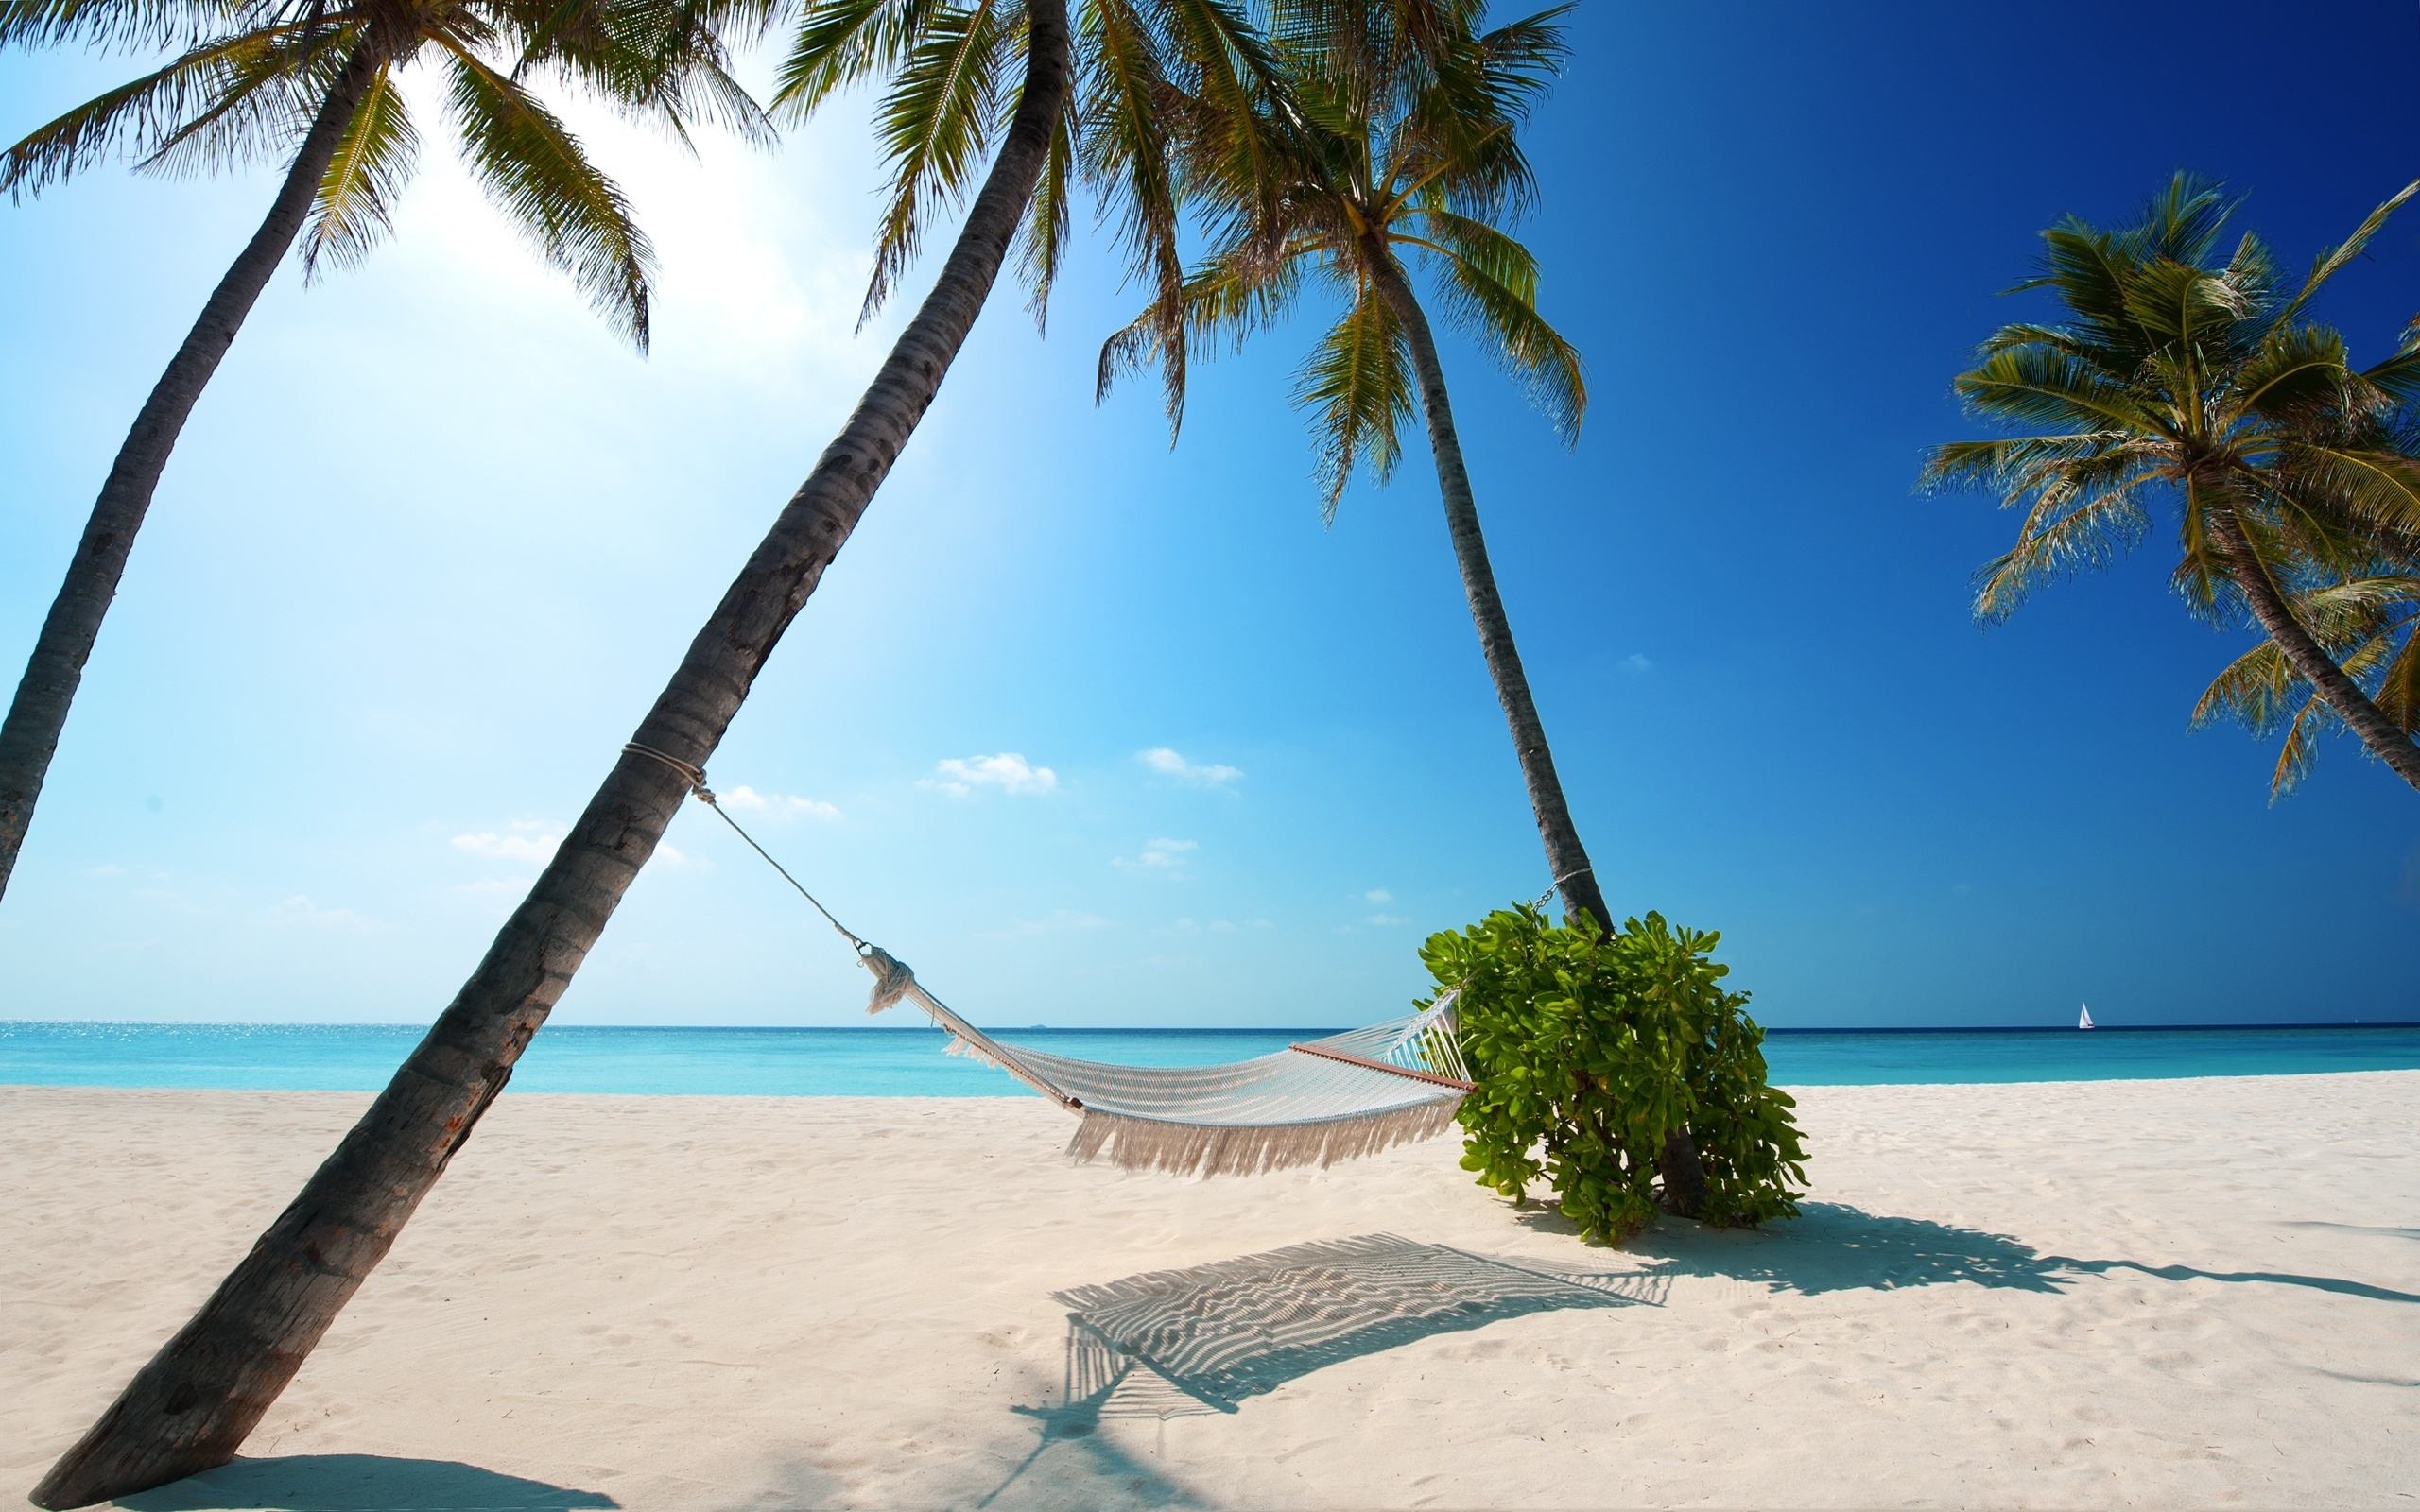 maldives-indian-ocean-tropics-palm-beach-ocean-hammock-blue-sky-sand-nature